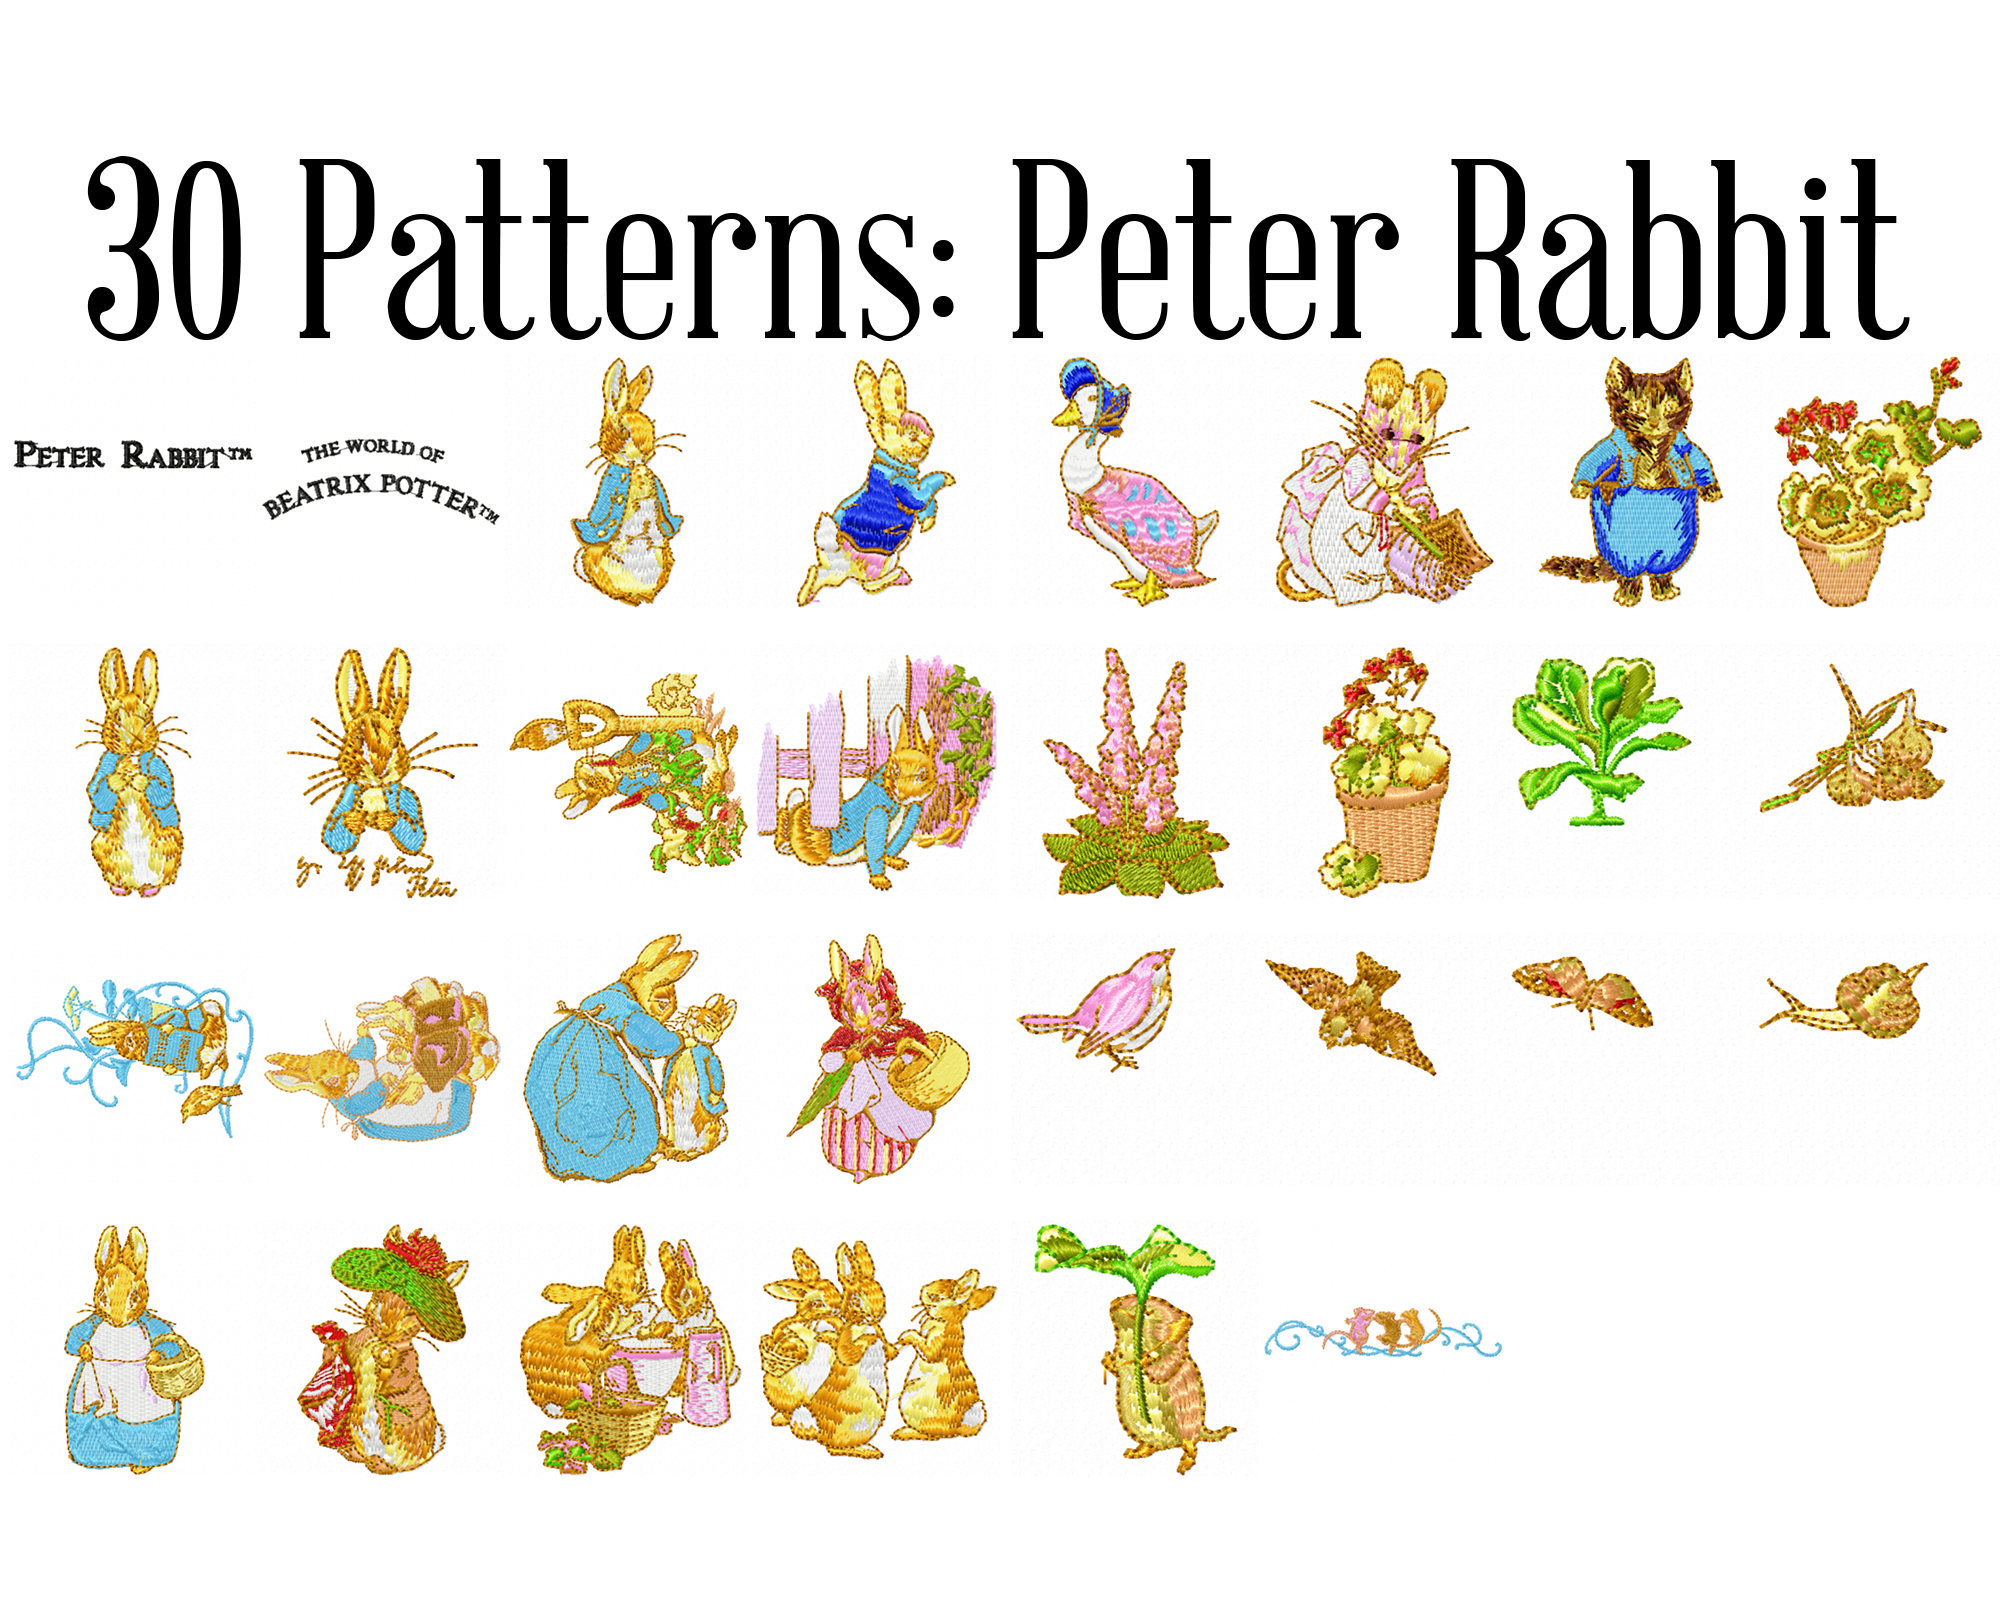 Embroidery Machine Patterns Download Beatrix Potter Peter Rabbit Machine Embroidery Patterns Peter Rabbit Embroidery Peter Rabbit Design Beatrix Potter Patch Instant Download